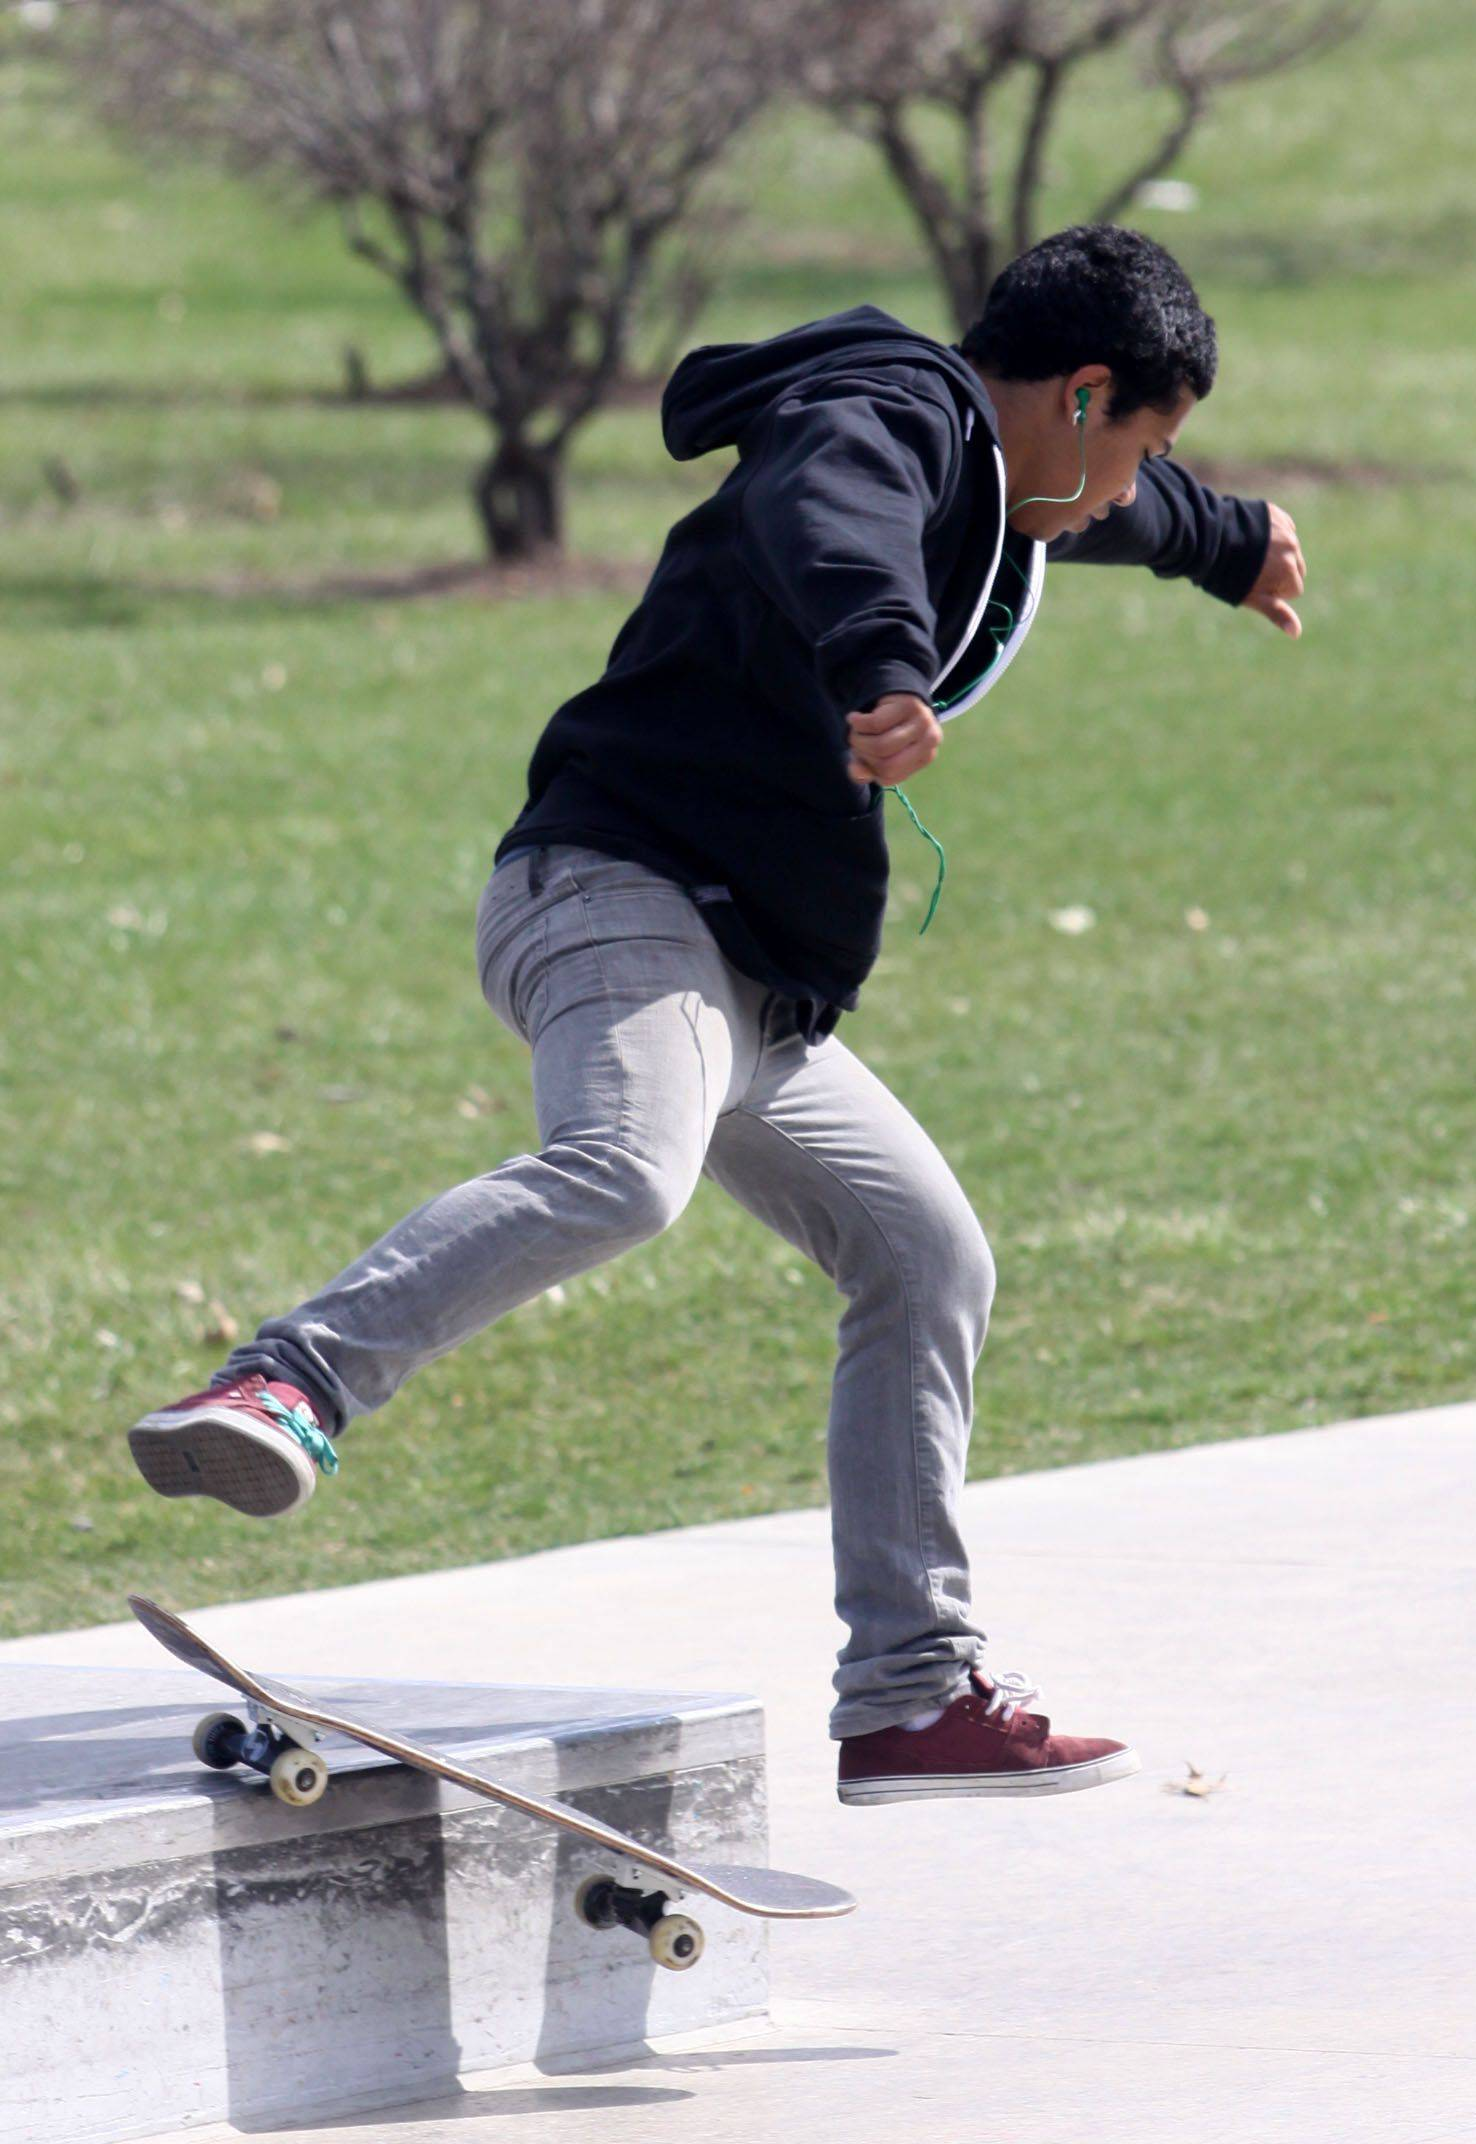 Ivan Arline, 17, of West Dundee performs a trick on a cement and steel rail at the skate area of Huffman Park in West Dundee.